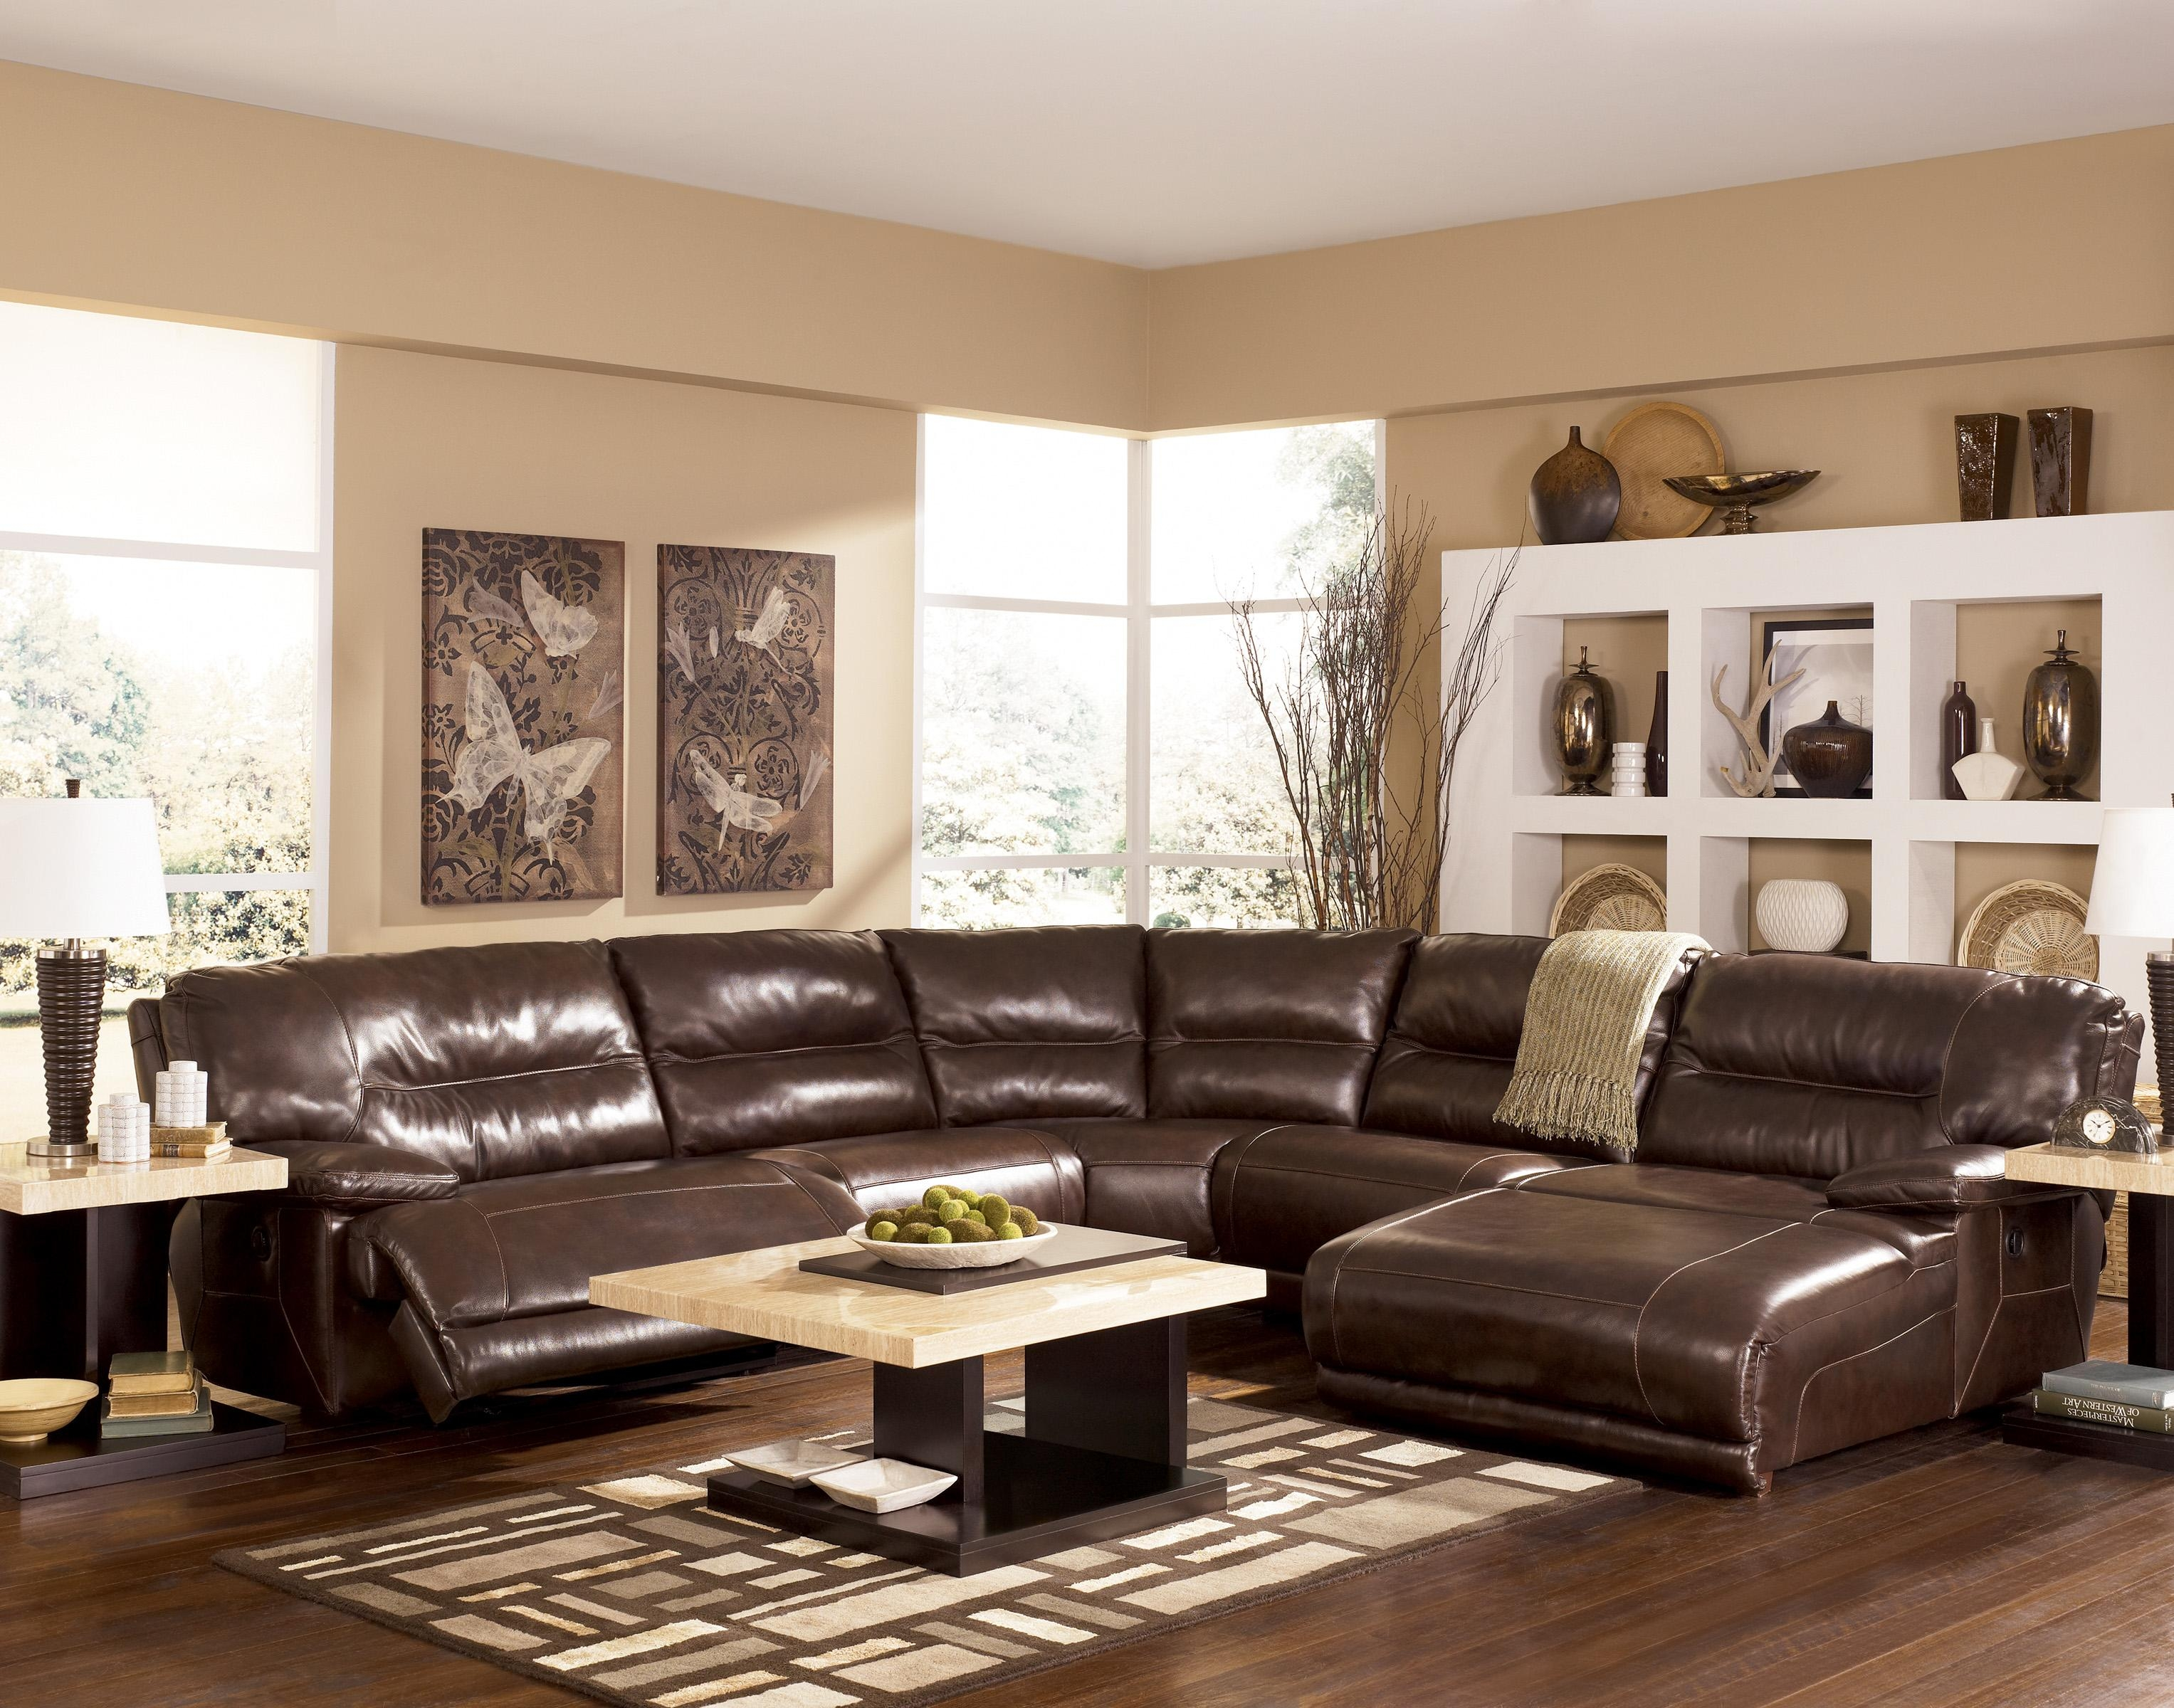 Ashley Furniture Leather Sectional Sofa 12 With Ashley Furniture Regarding Ashley Furniture Leather Sectional Sofas (Image 2 of 20)